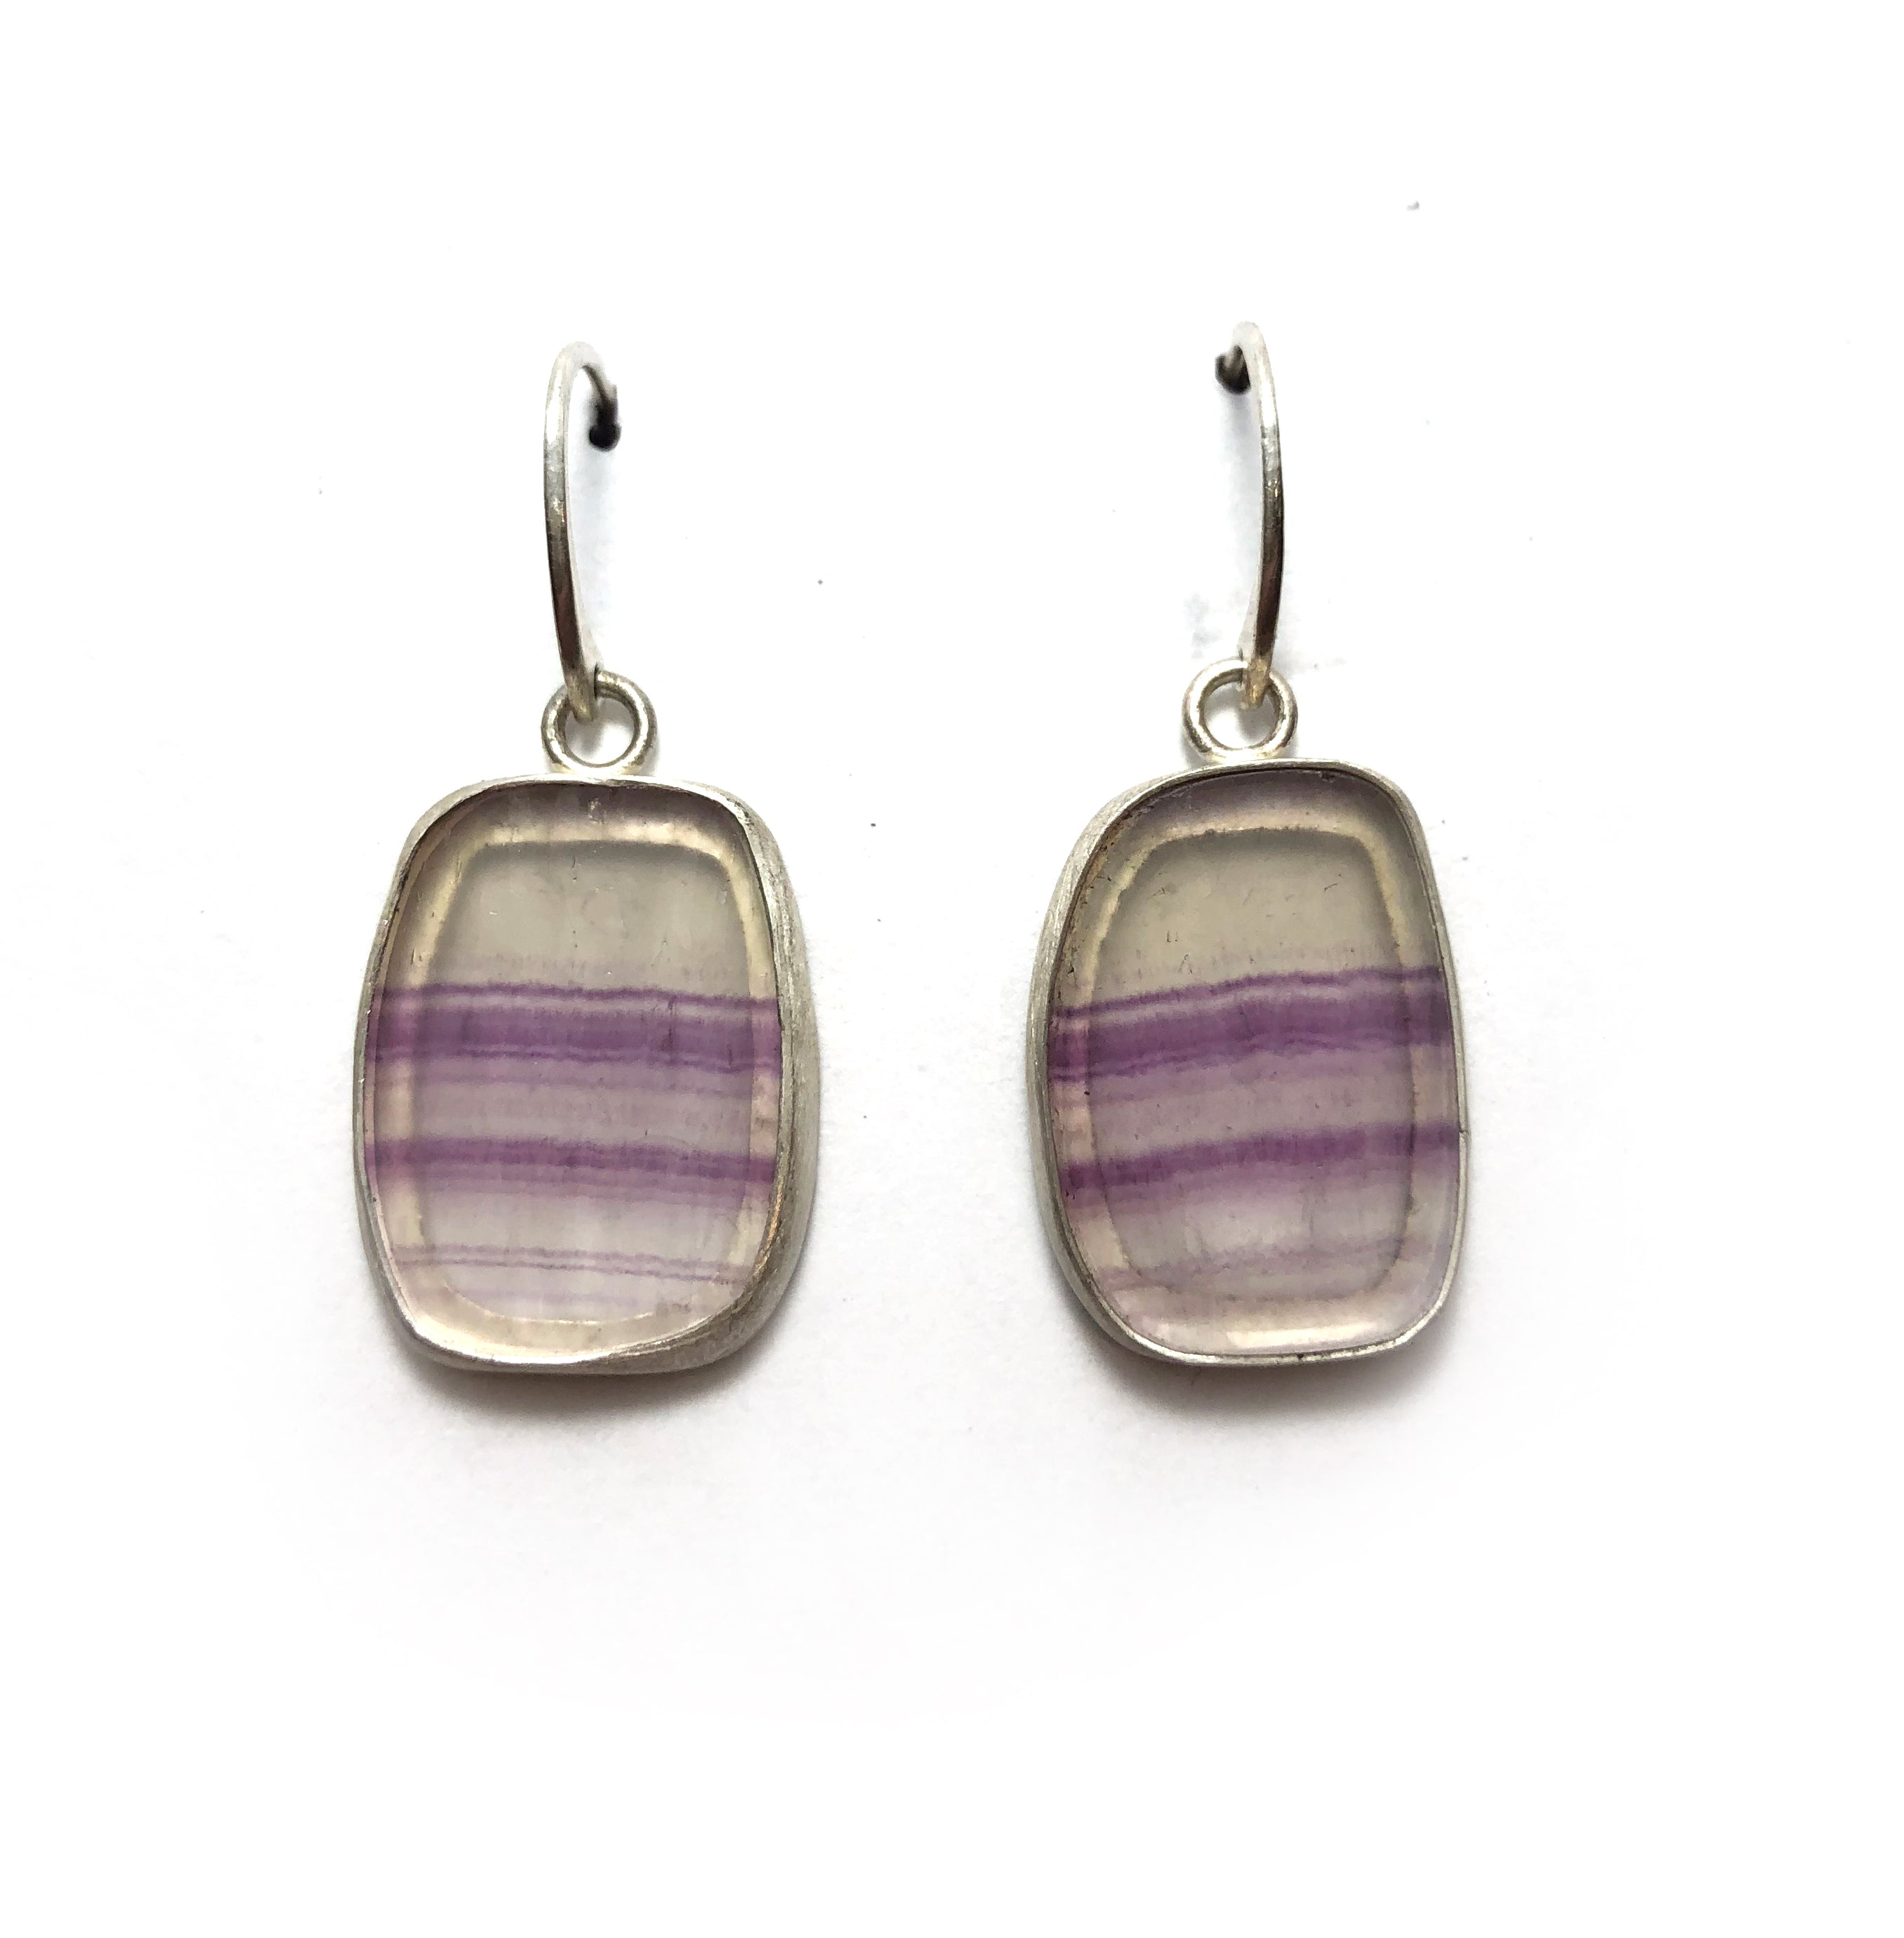 Fluorite slice earrings set in sterling silver